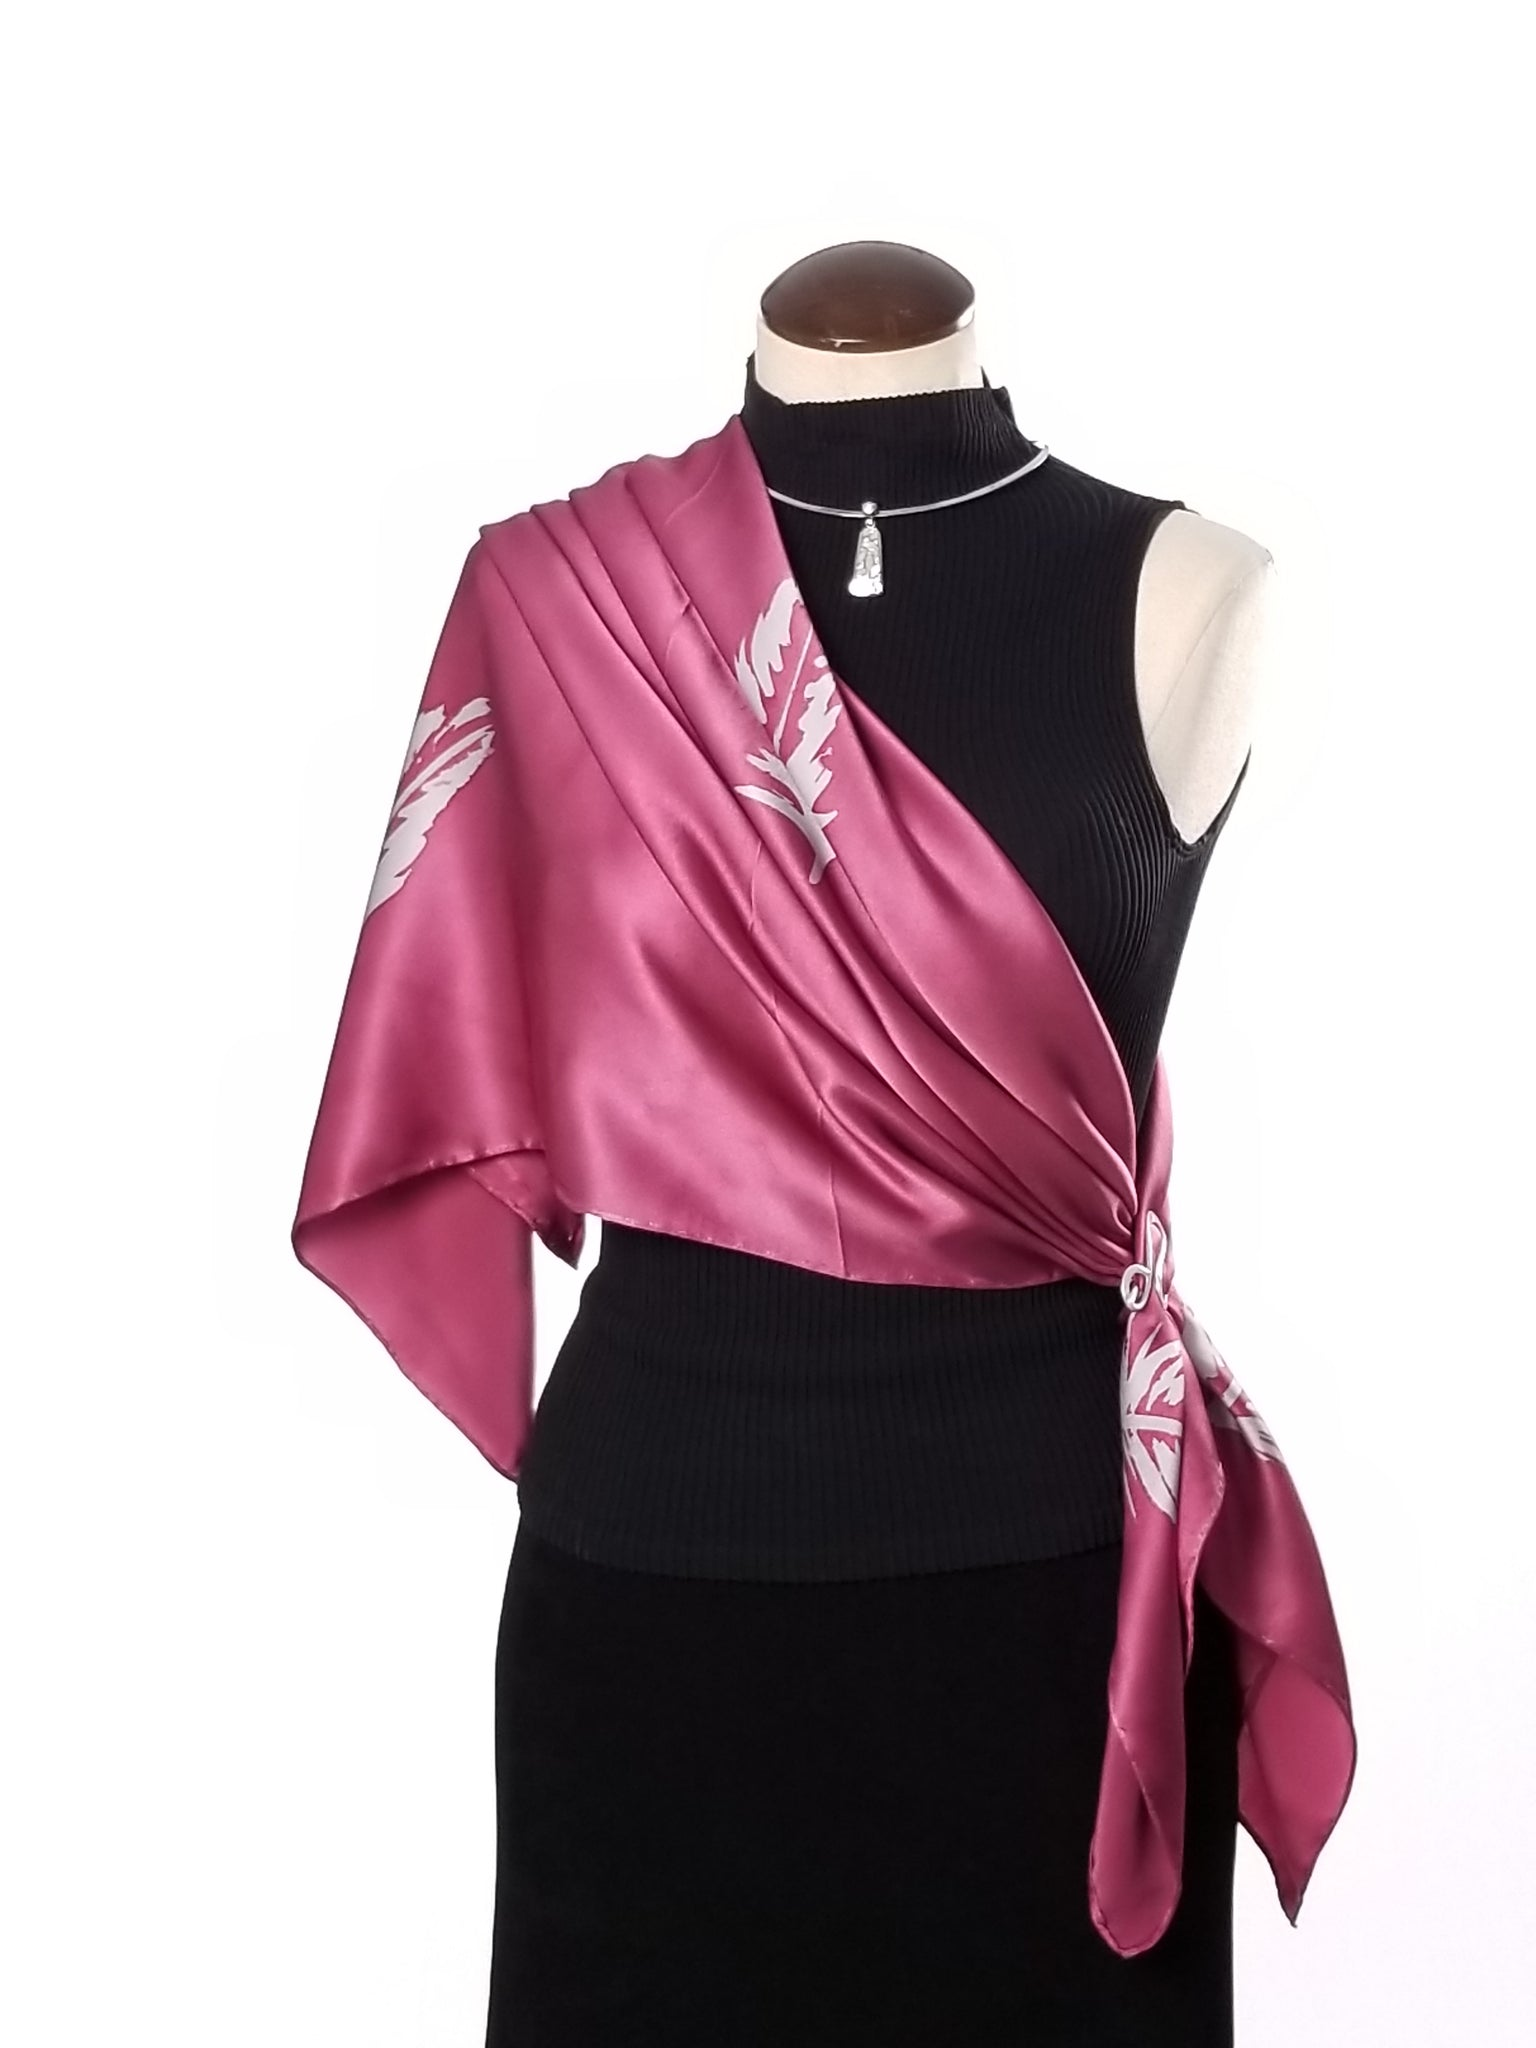 Pink Champagne - Hand Painted Silk Scarf / Wrap